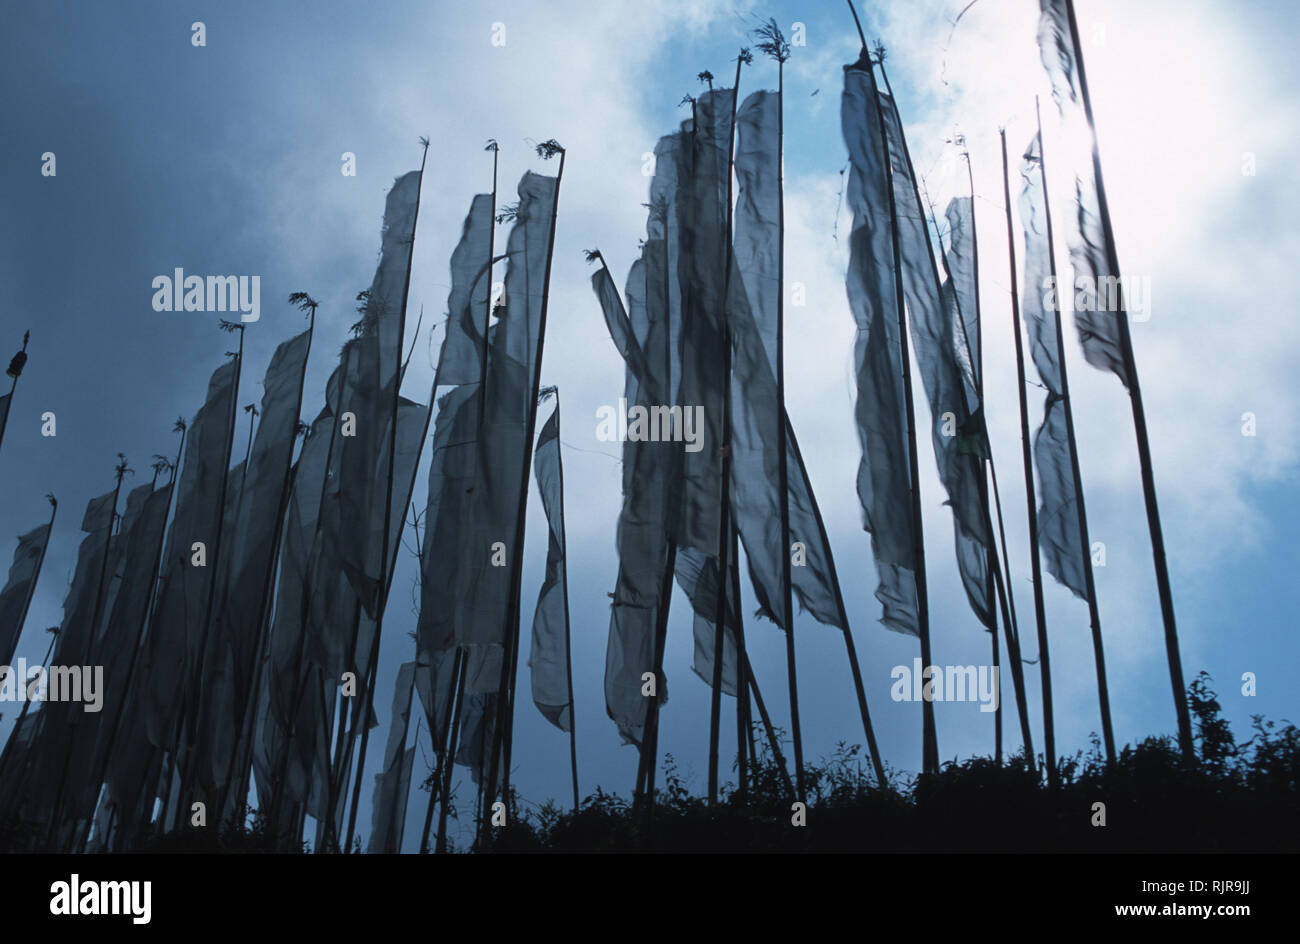 Prayer flags line the ridge of a hill in the small Himalayan township of Pelling, India. A former Tibetan kingdom still practicing Tibet's Mahayana Bu - Stock Image